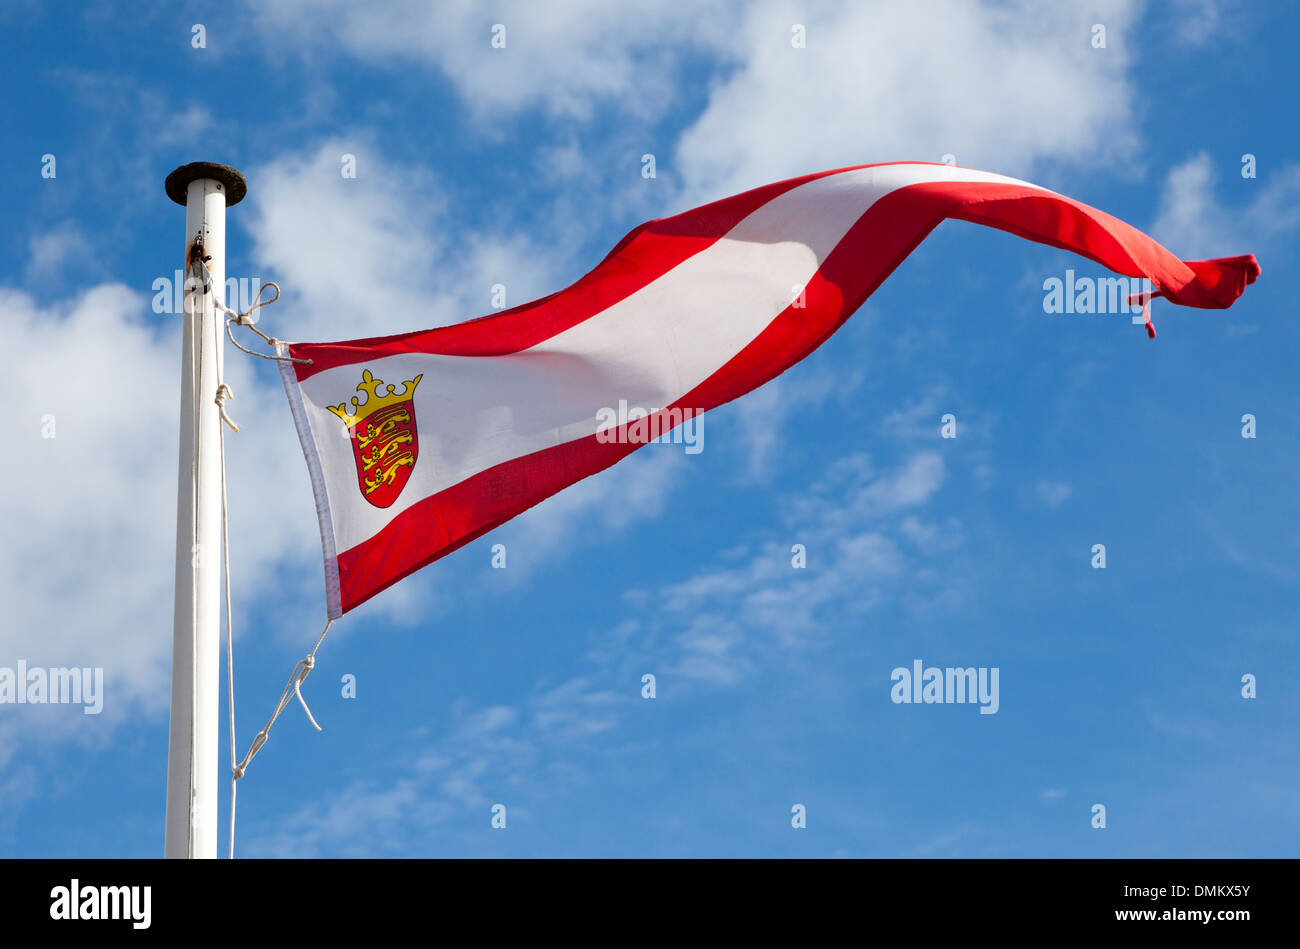 Jersey coat of arms on flag, Channel Islands, UK - Stock Image